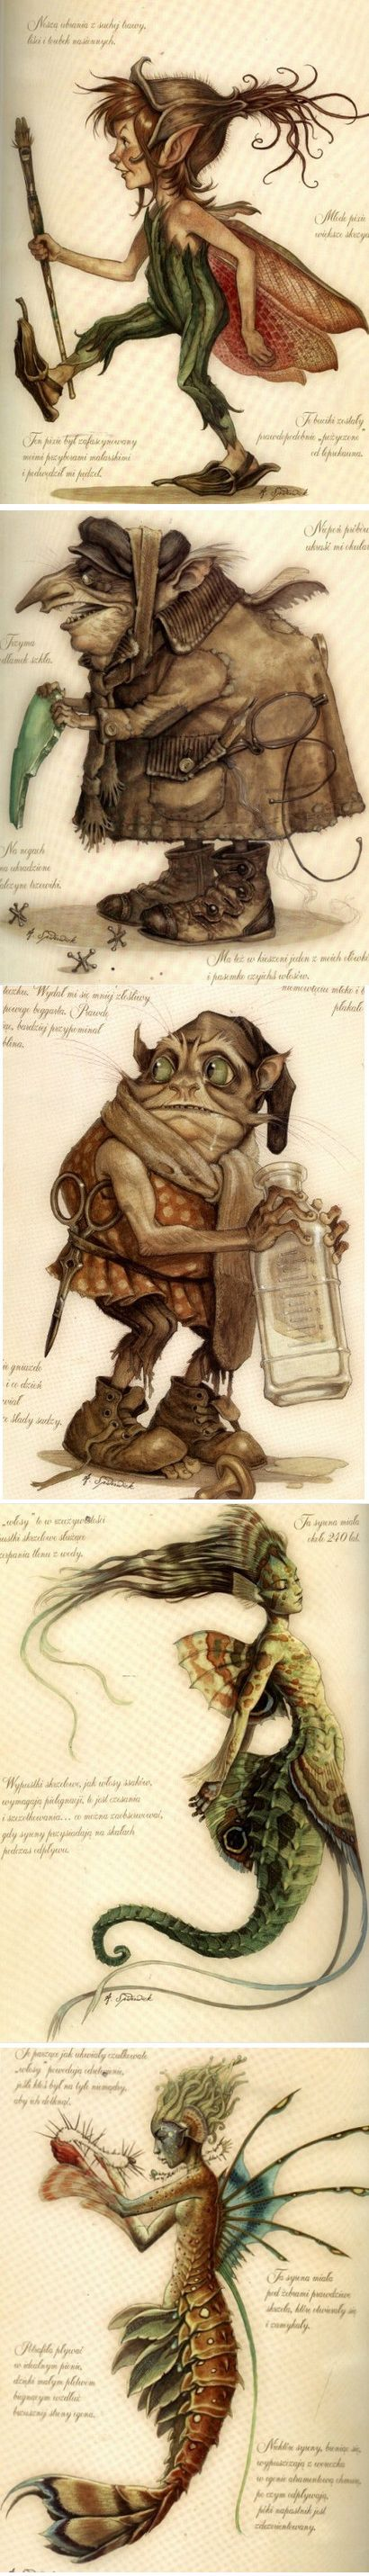 Goblins & Fairies by Tony DiTerlizzi